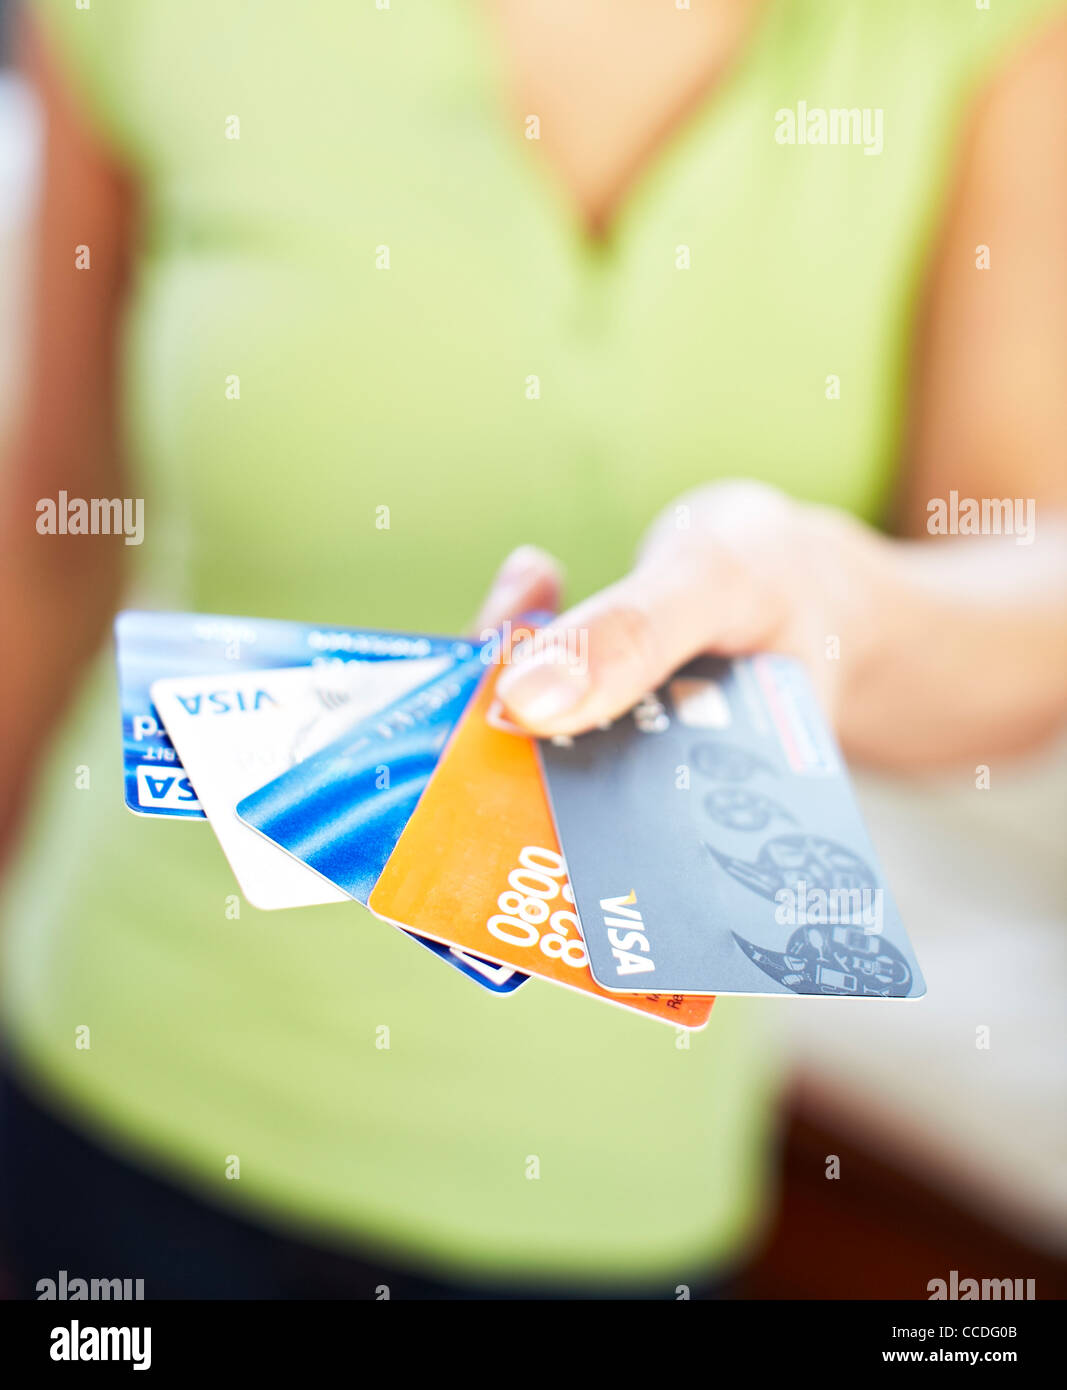 Woman holding credit cards - Stock Image